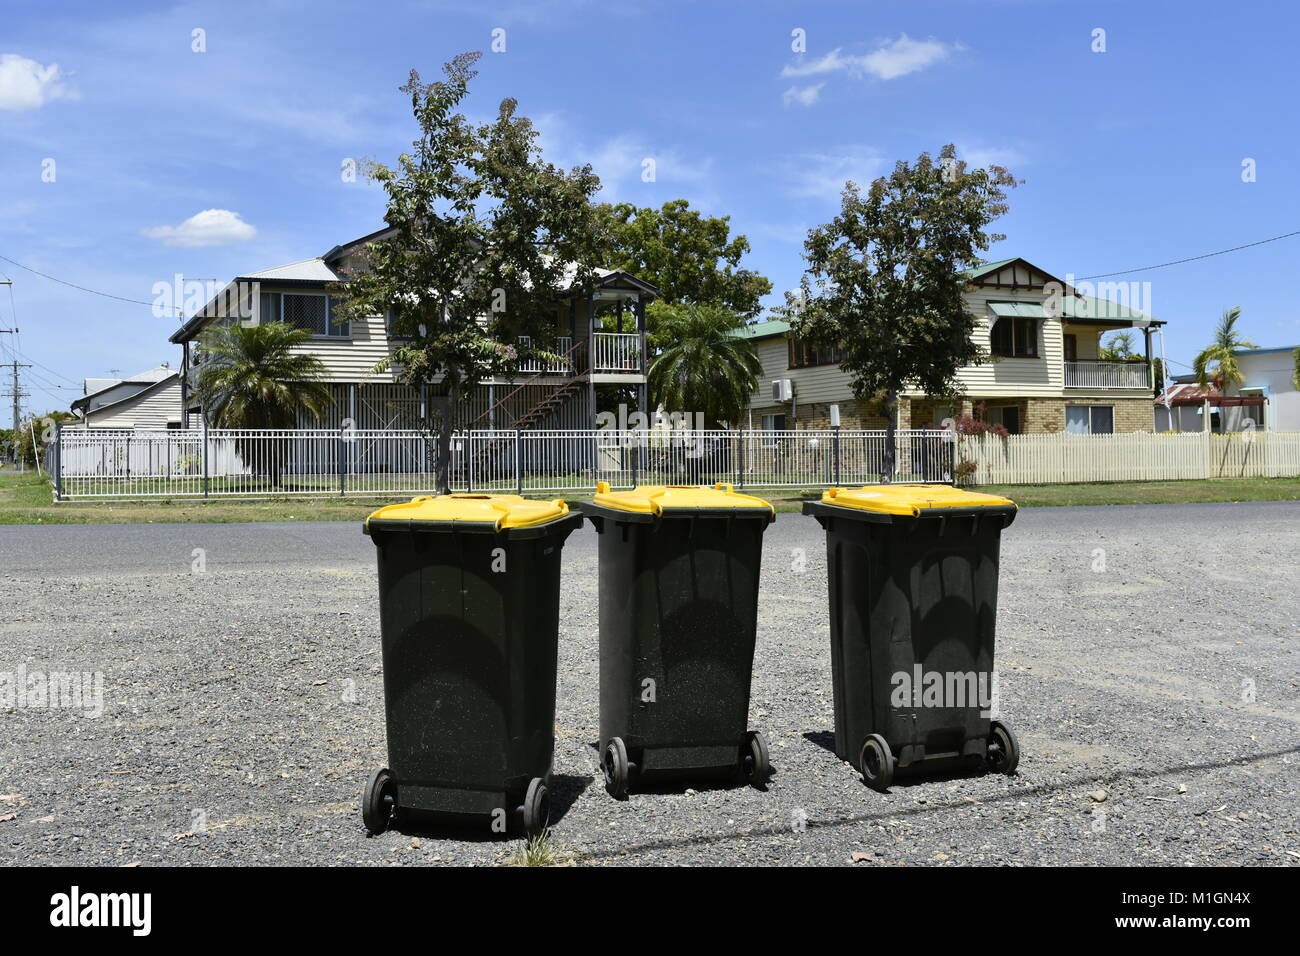 THREE RUBBISH BINS - Stock Image